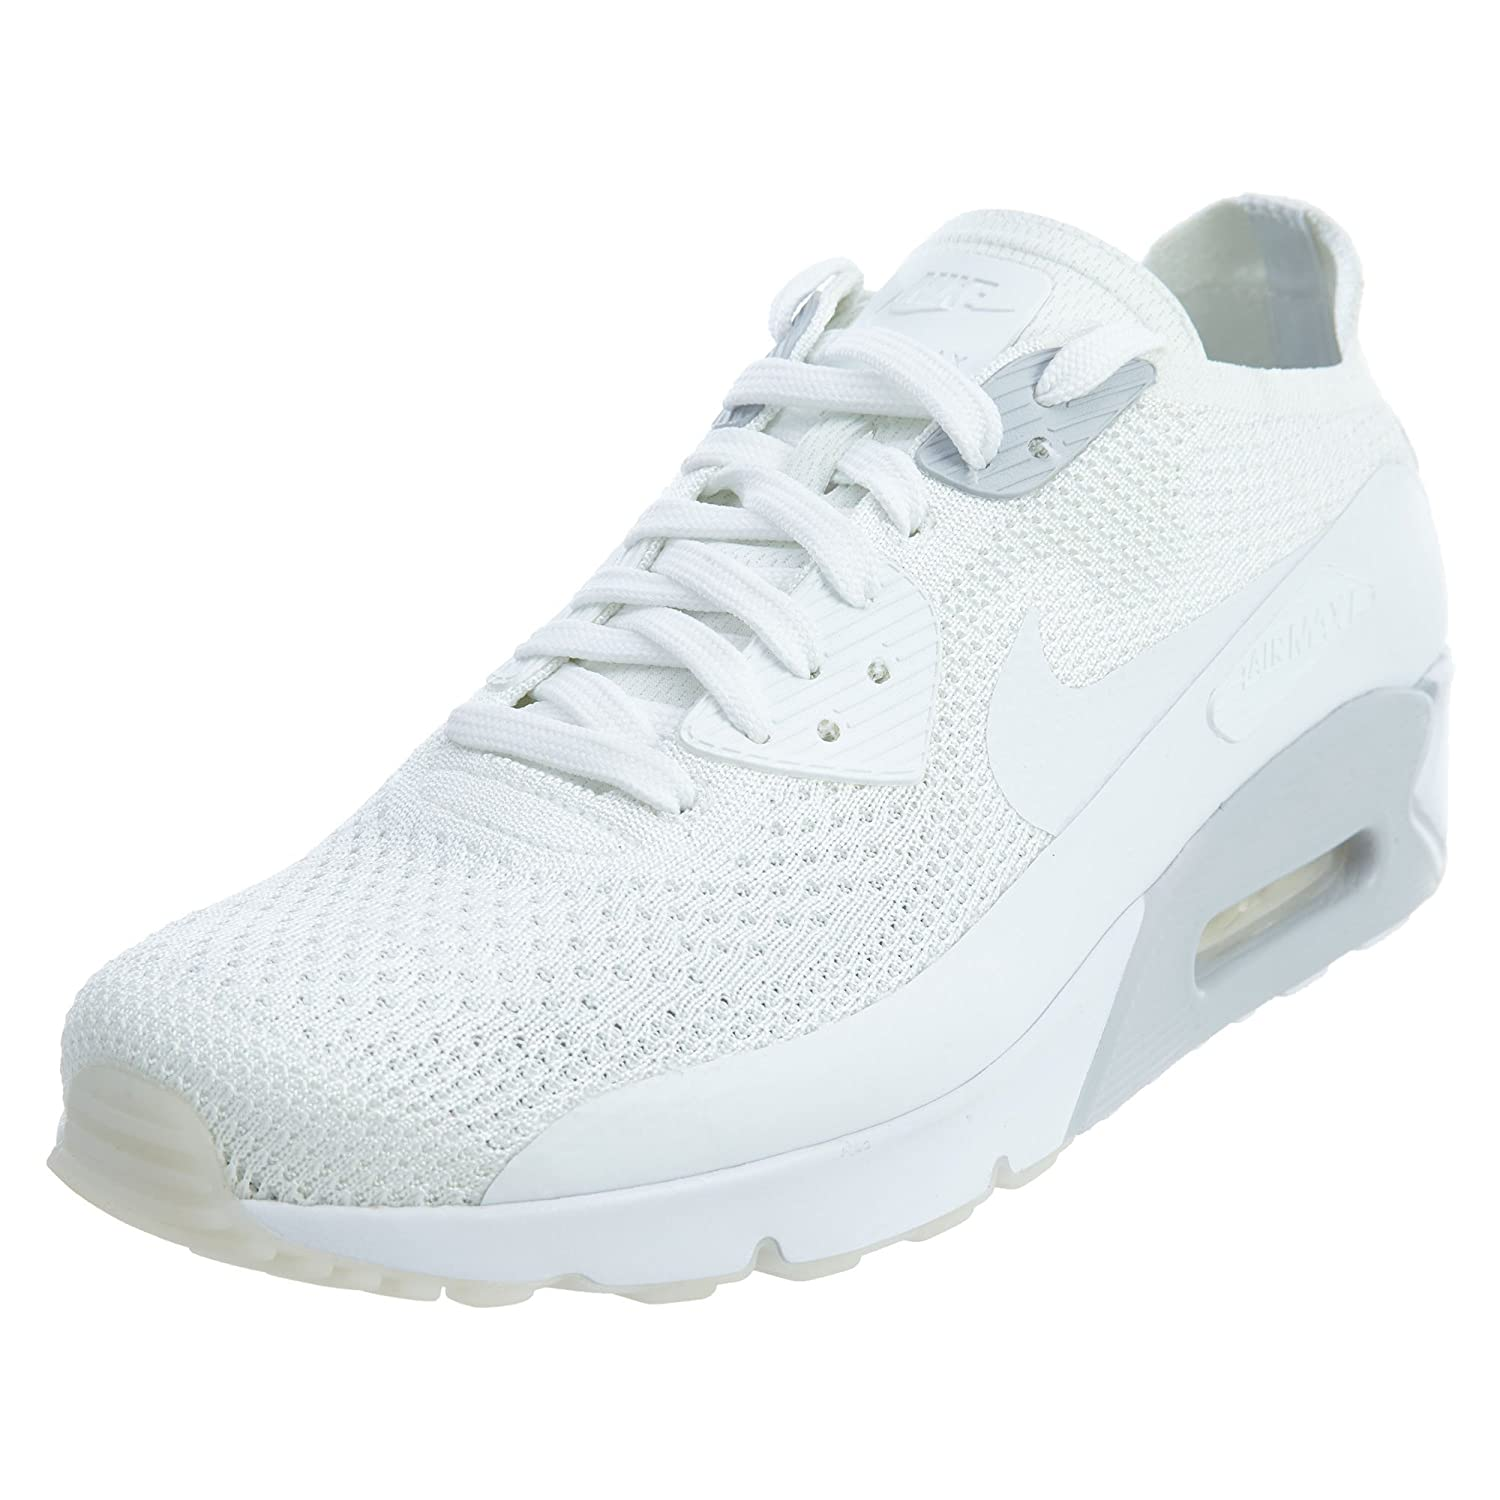 Nike Air Max 90 Ultra 2.0 Flyknit  Amazon.co.uk  Shoes   Bags 8135f4e93966